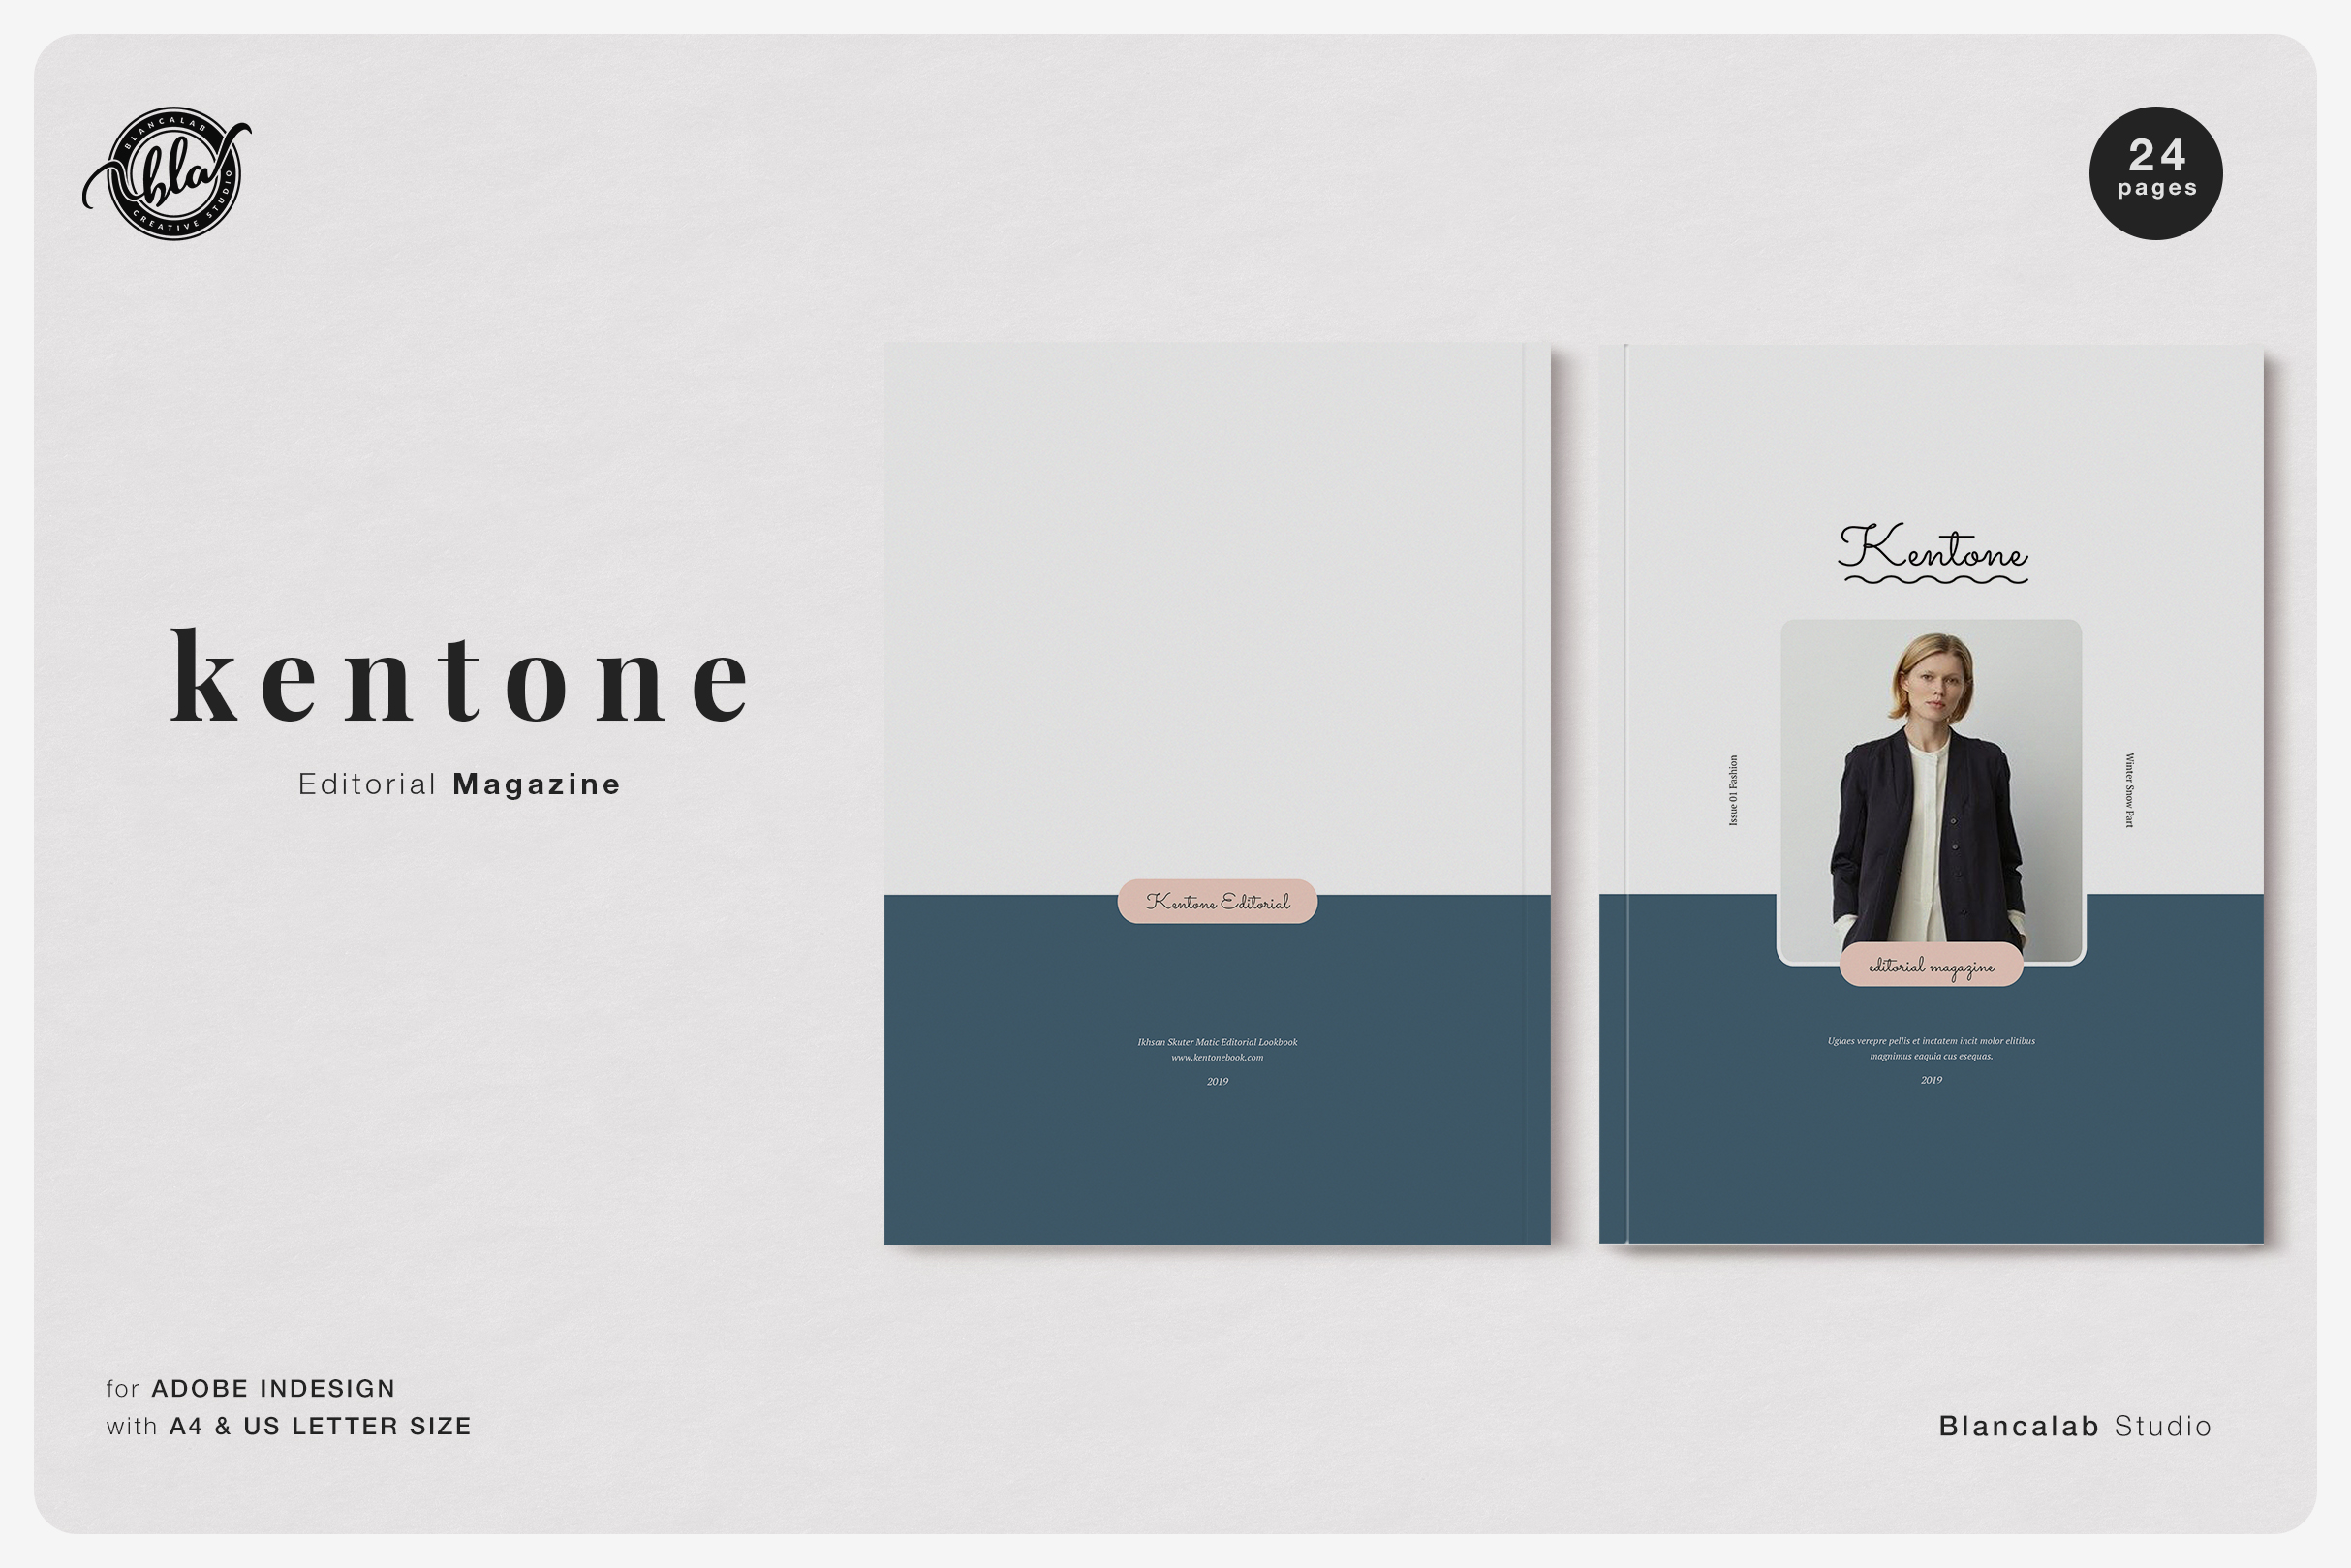 Download Free Kentone Editorial Magazine Graphic By Blancalab Studio Creative Fabrica for Cricut Explore, Silhouette and other cutting machines.